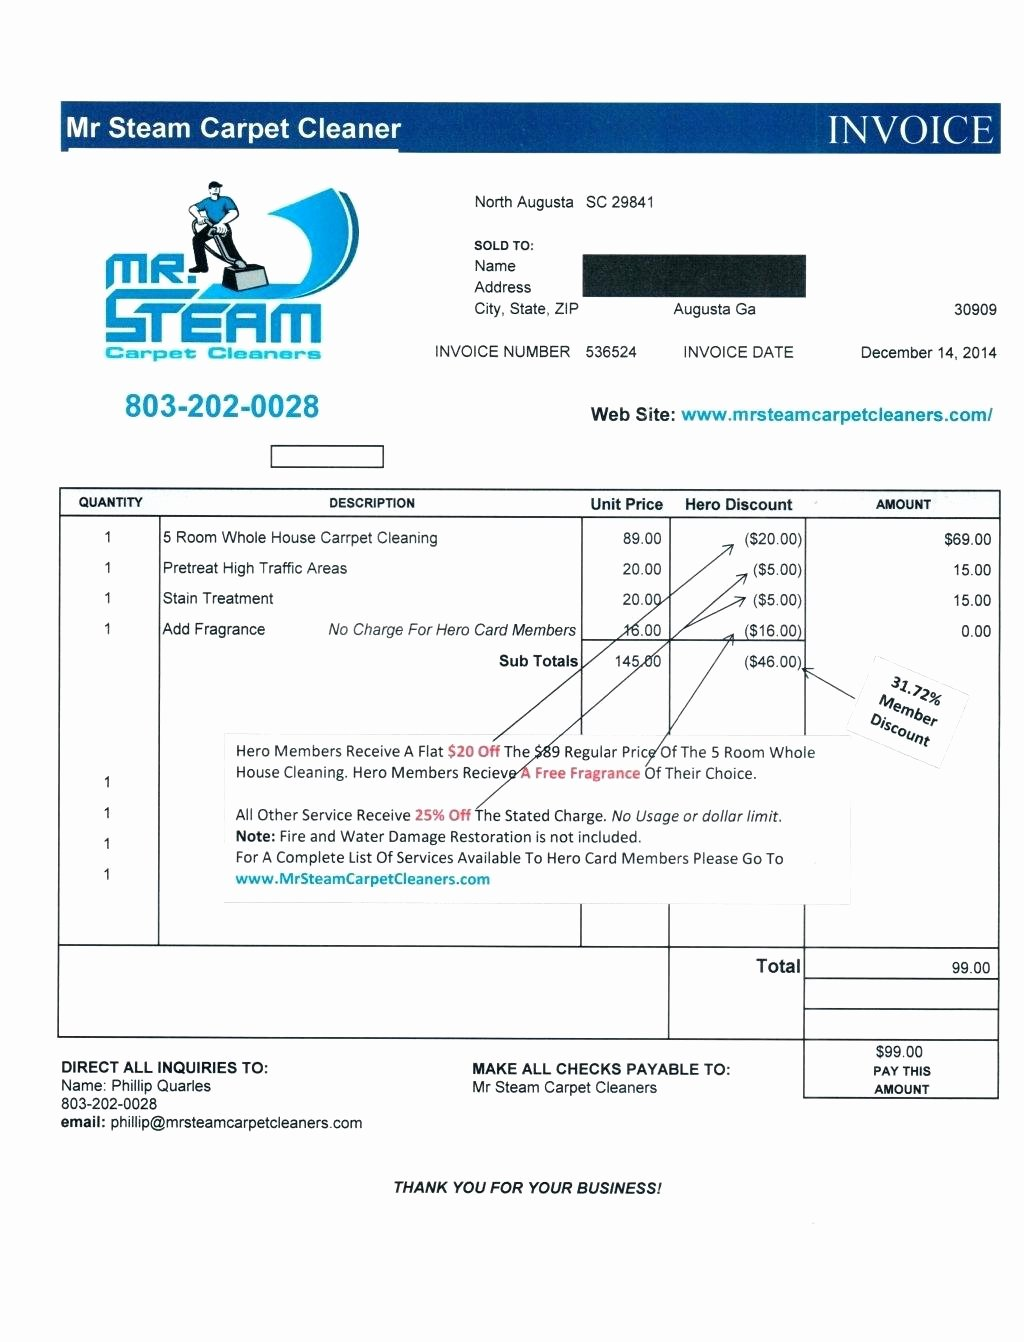 Carpet Cleaning Invoice Template Inspirational Template Carpet Cleaning Invoice Template Style 1 Carpet